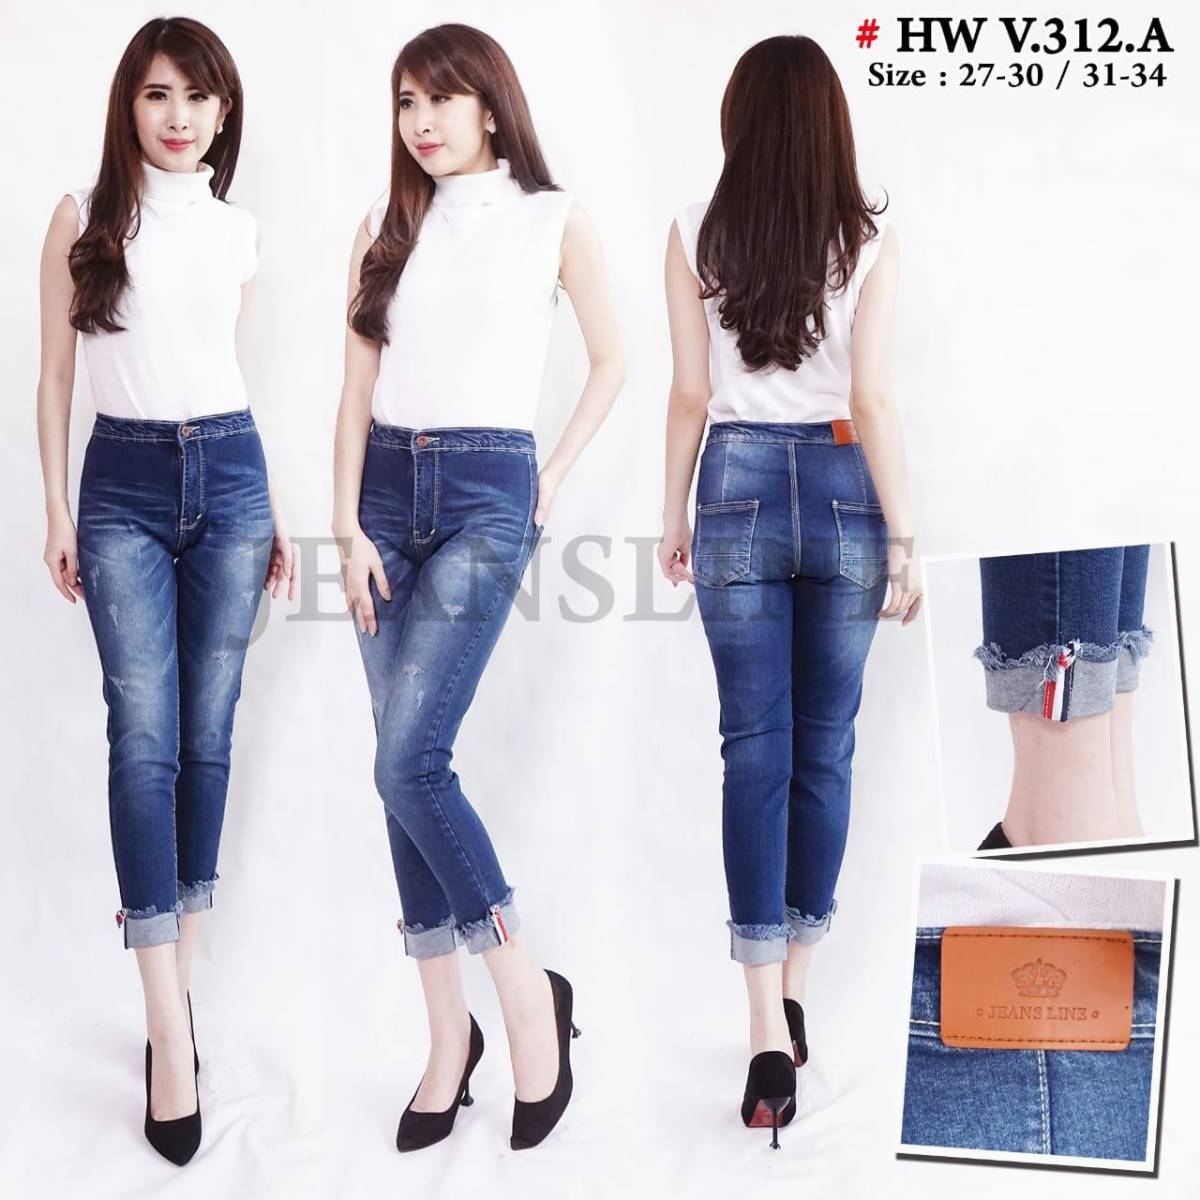 Celana Panjang Jeans Wanita (size 31, 32, 33, 34)